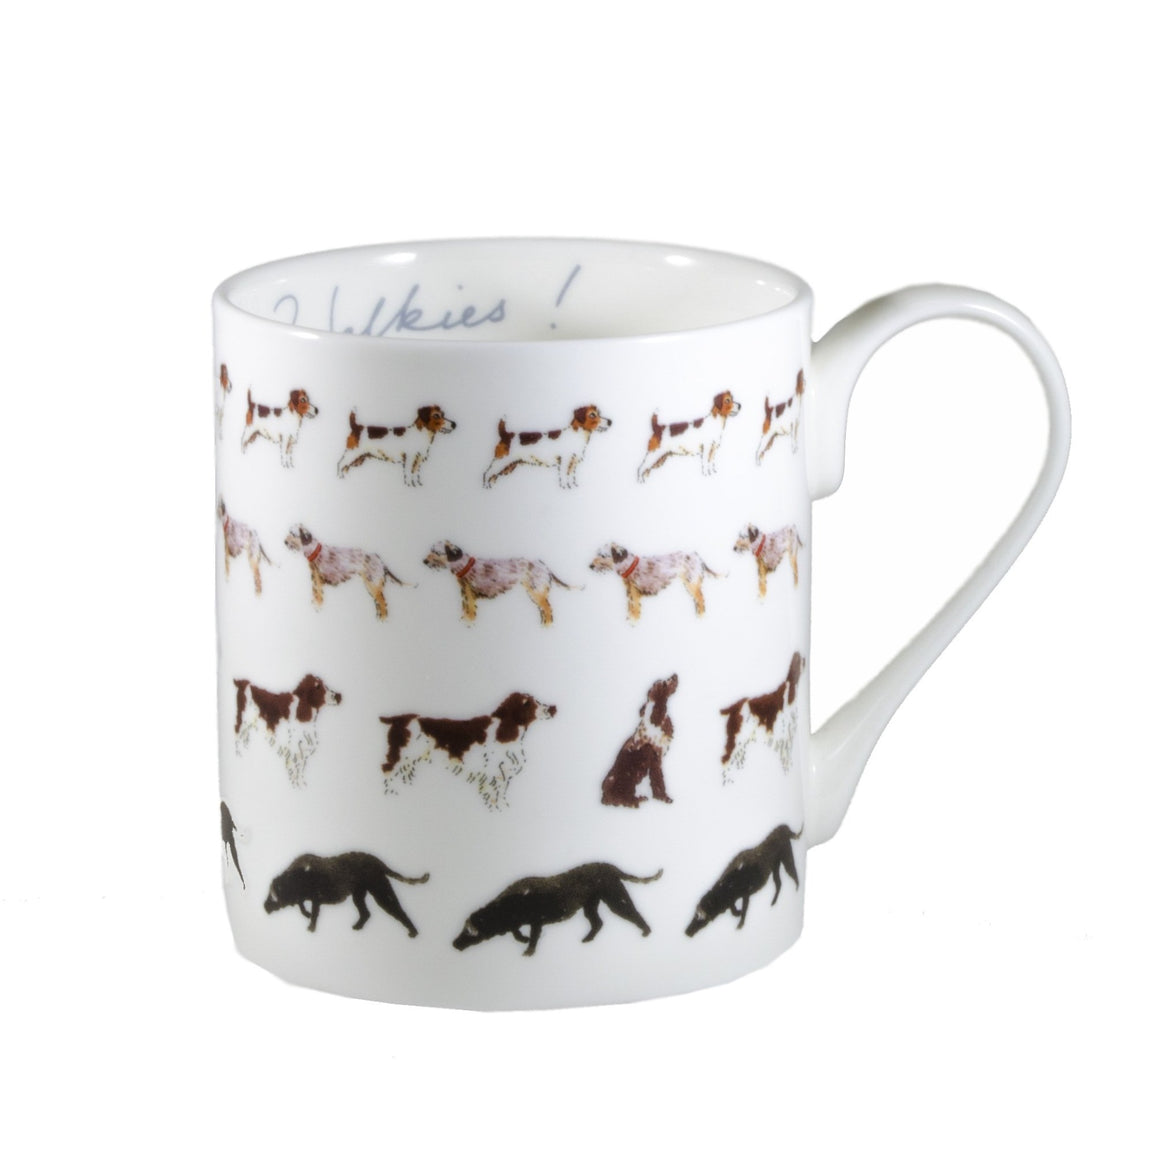 Dogs Walkies Mug